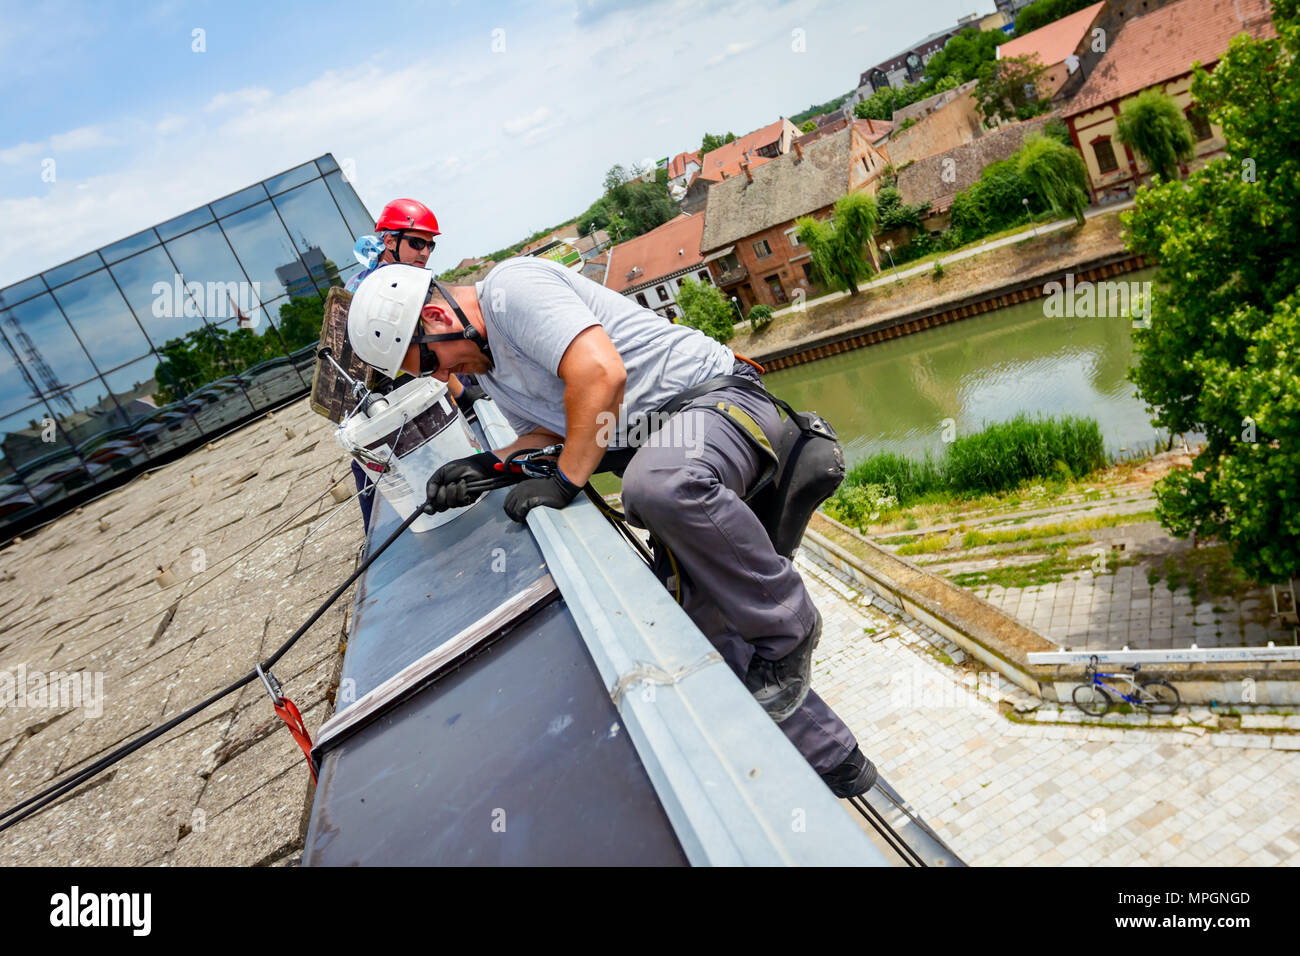 Industrial climber, alpinist, is passes over roof edge. He is climb down to wash building. - Stock Image